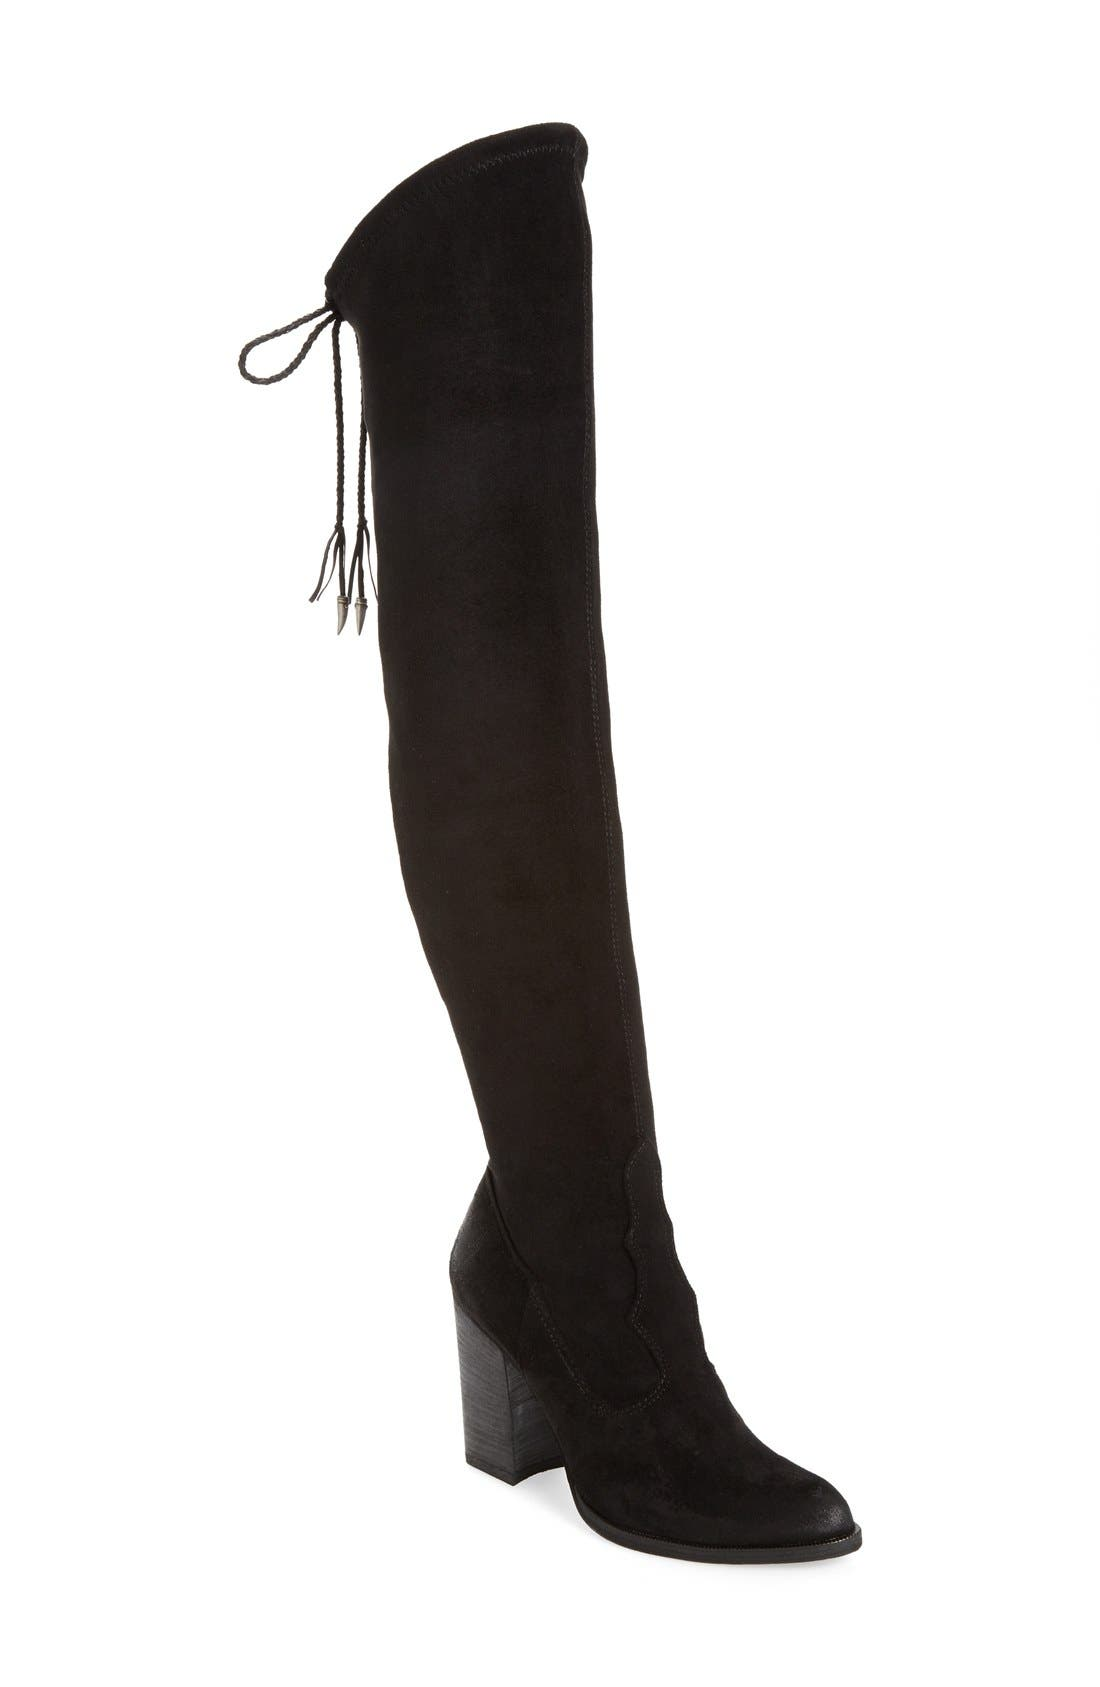 Dolce Vita Women's 'Chance' Over The Knee Stretch Boot yT9MH7SZr